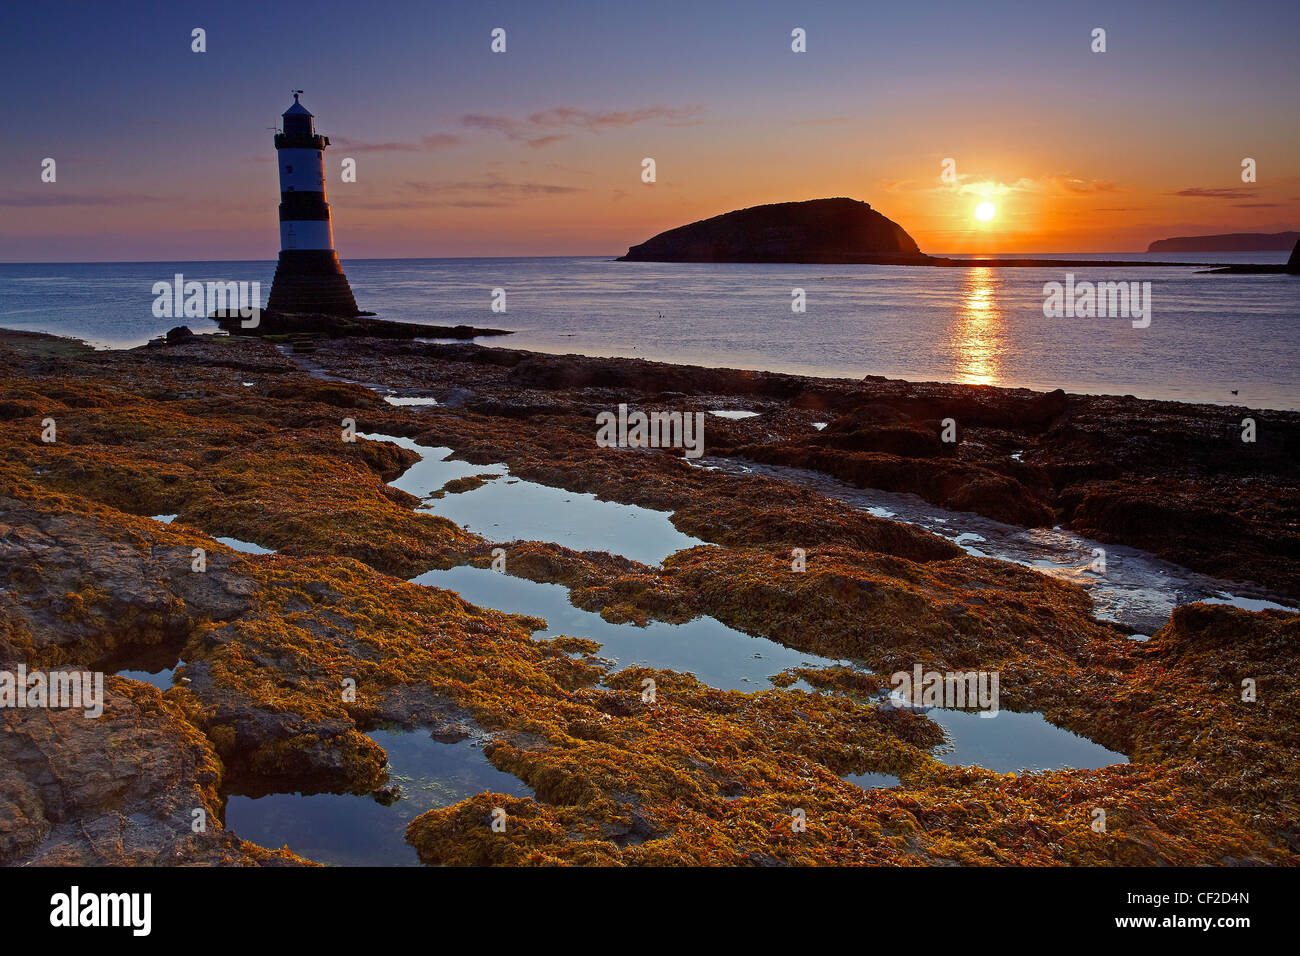 Penmon Lighthouse, also known as Menai Lighthouse, at the north entrance to the Menai Strait opposite Puffin Island - Stock Image